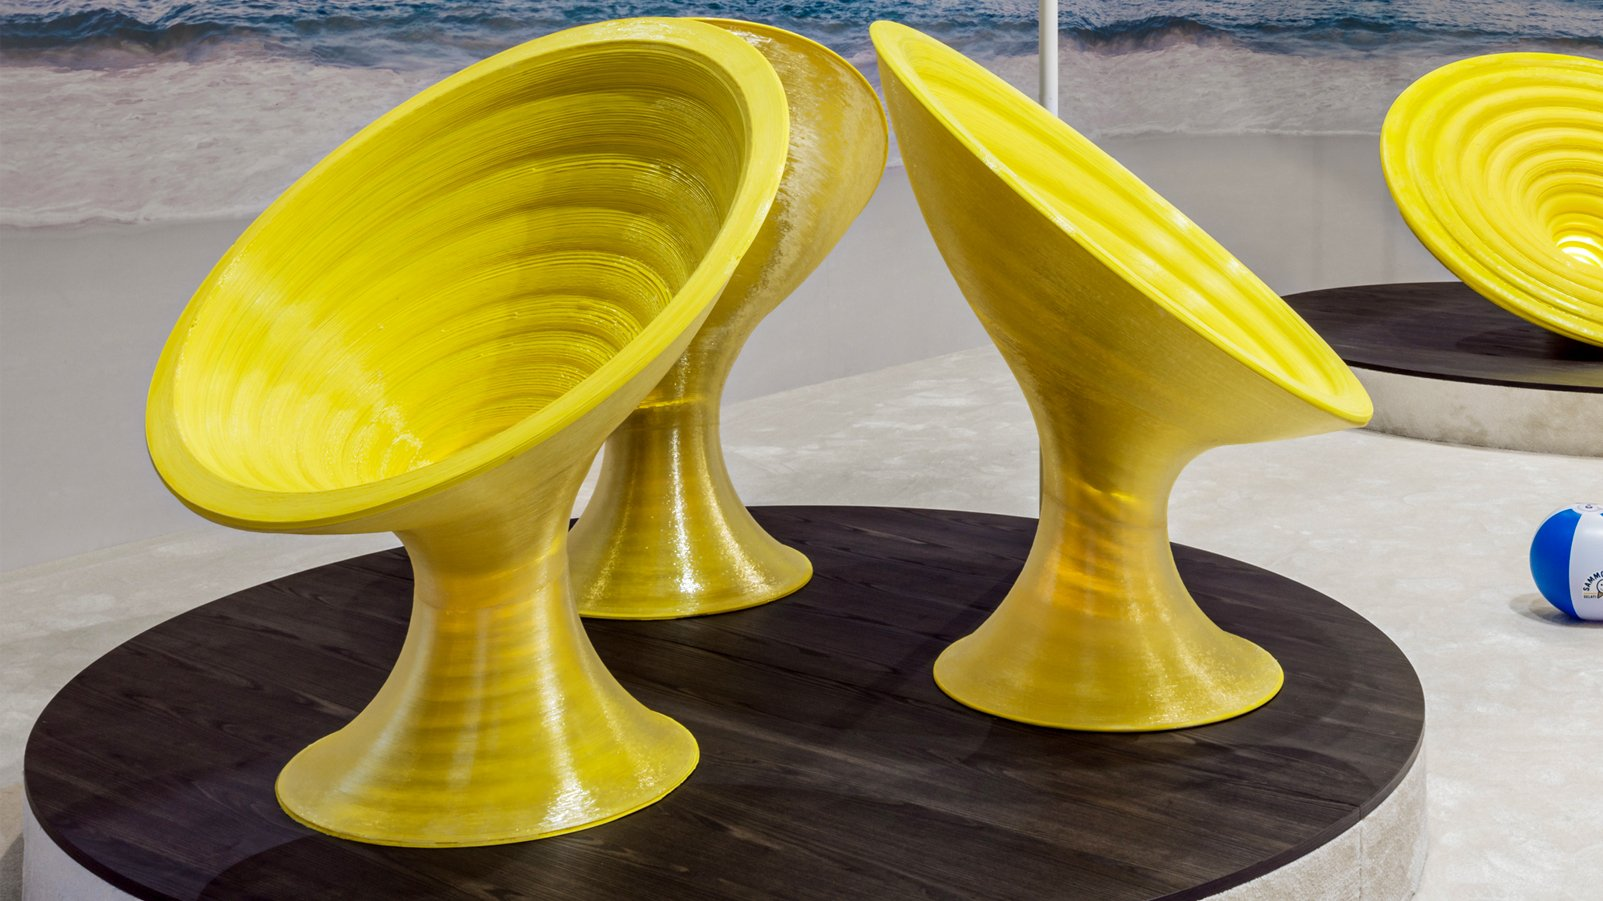 Large-Format 3D Printers Big Enough to Print a Chair | All3DP Pro